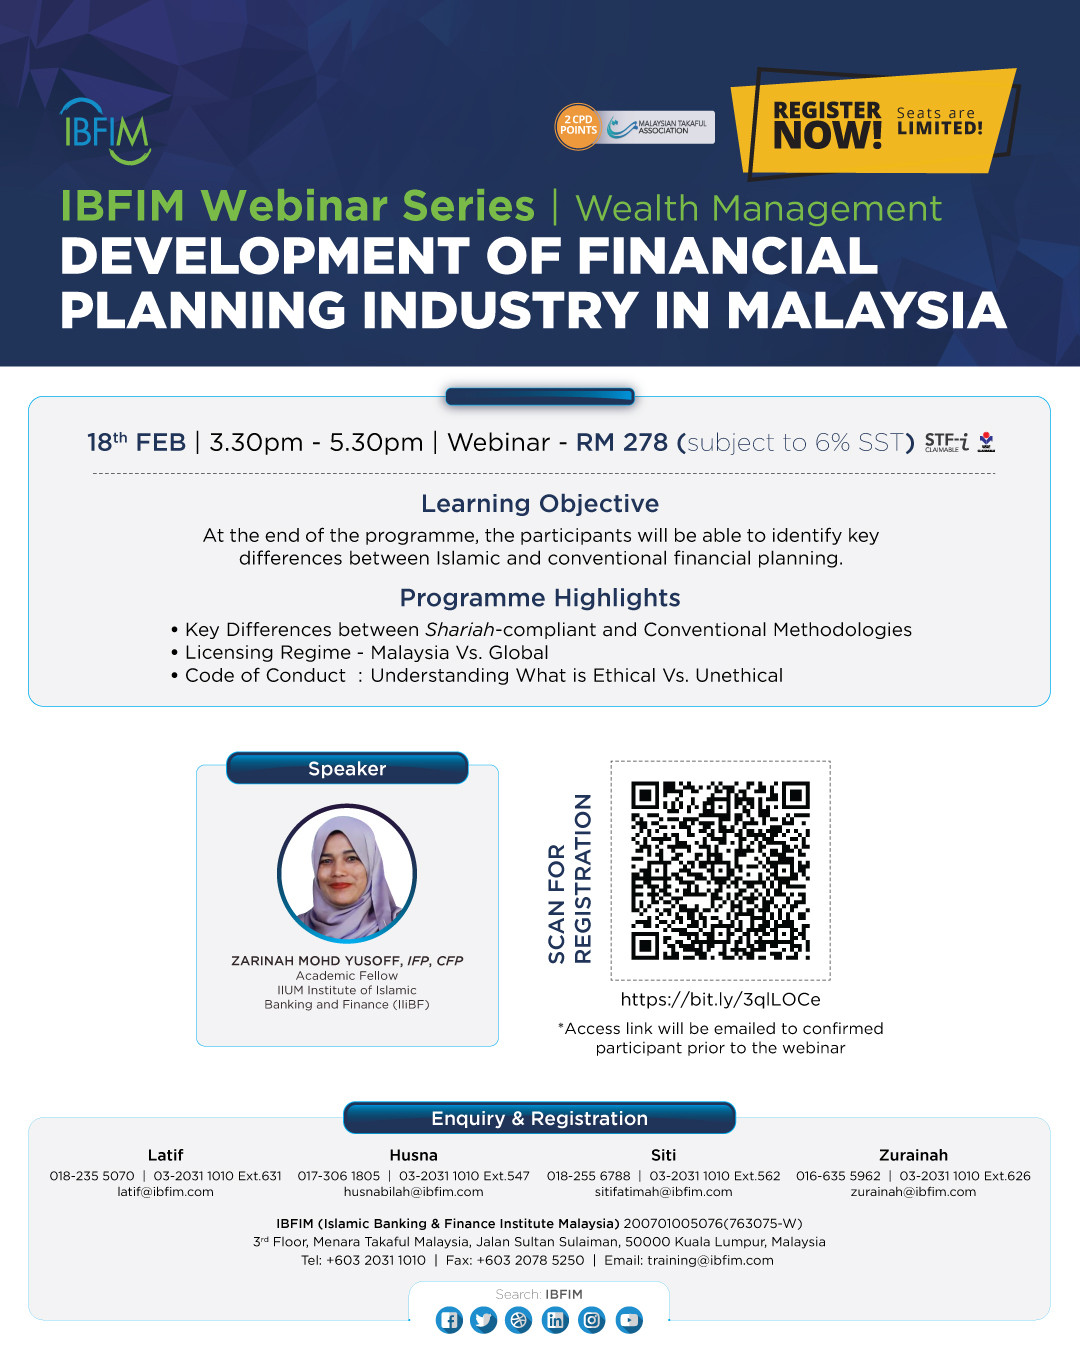 Development of Financial Planning Industry in Malaysia